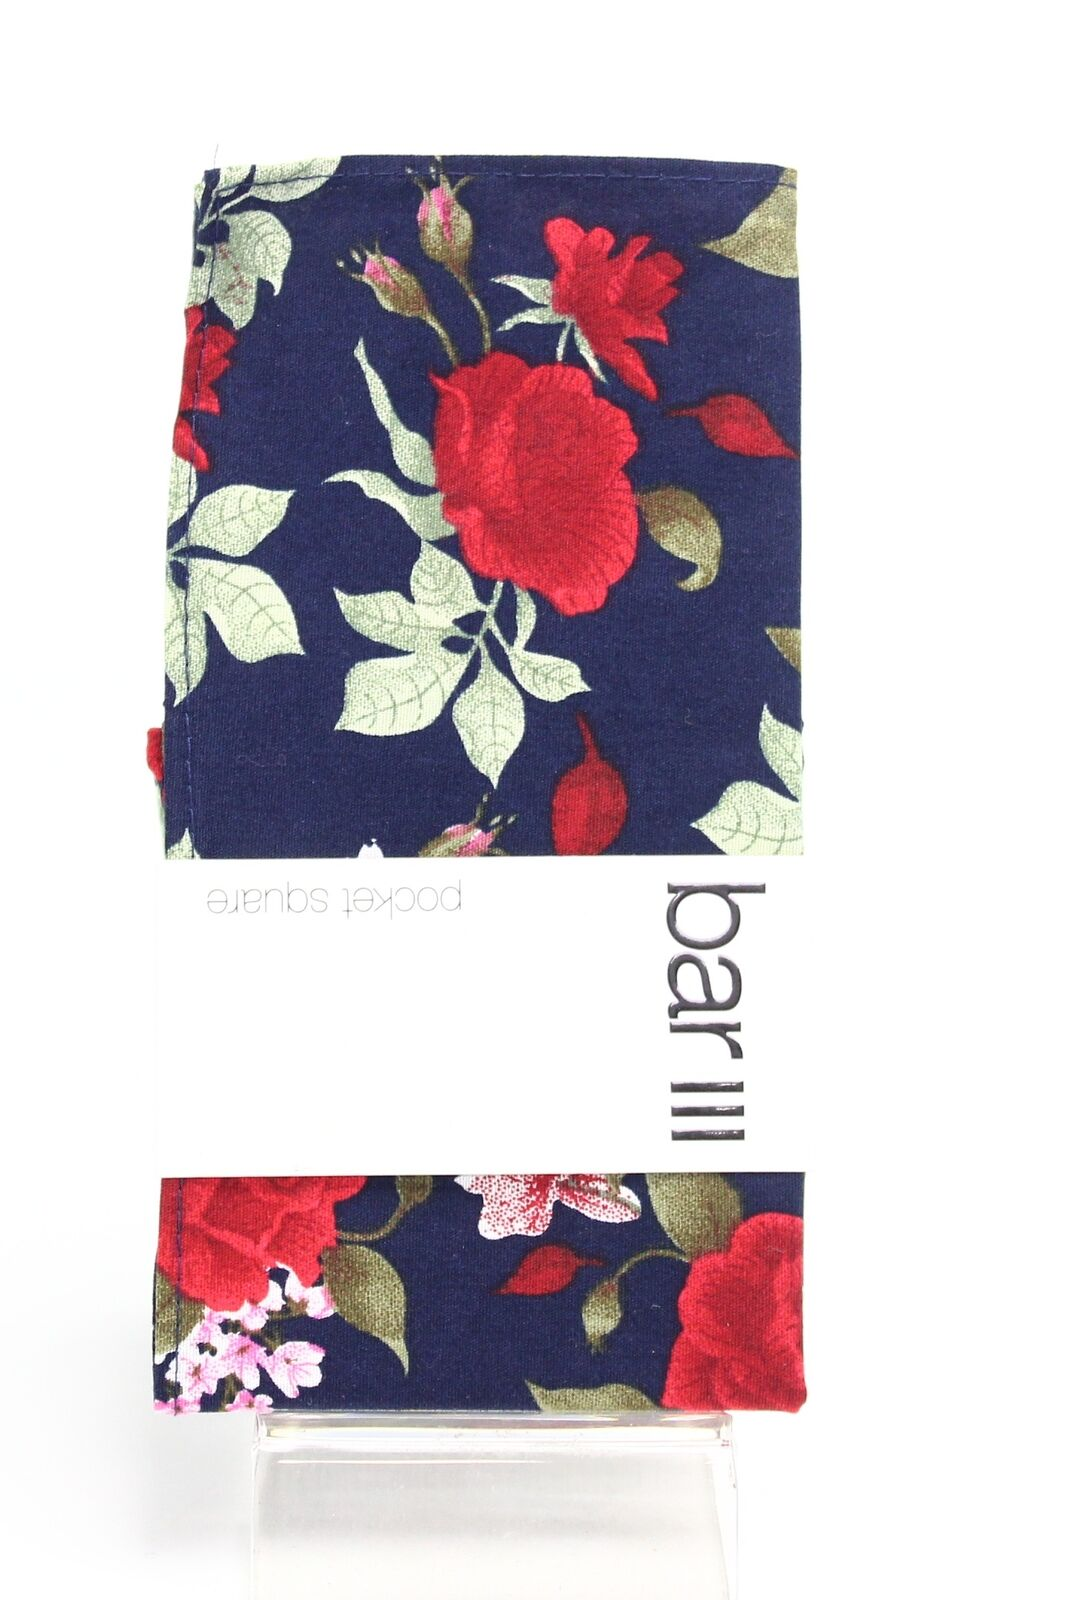 Bar III Men's Pocket Square Navy Blue Louden Floral Printed Accessory #643